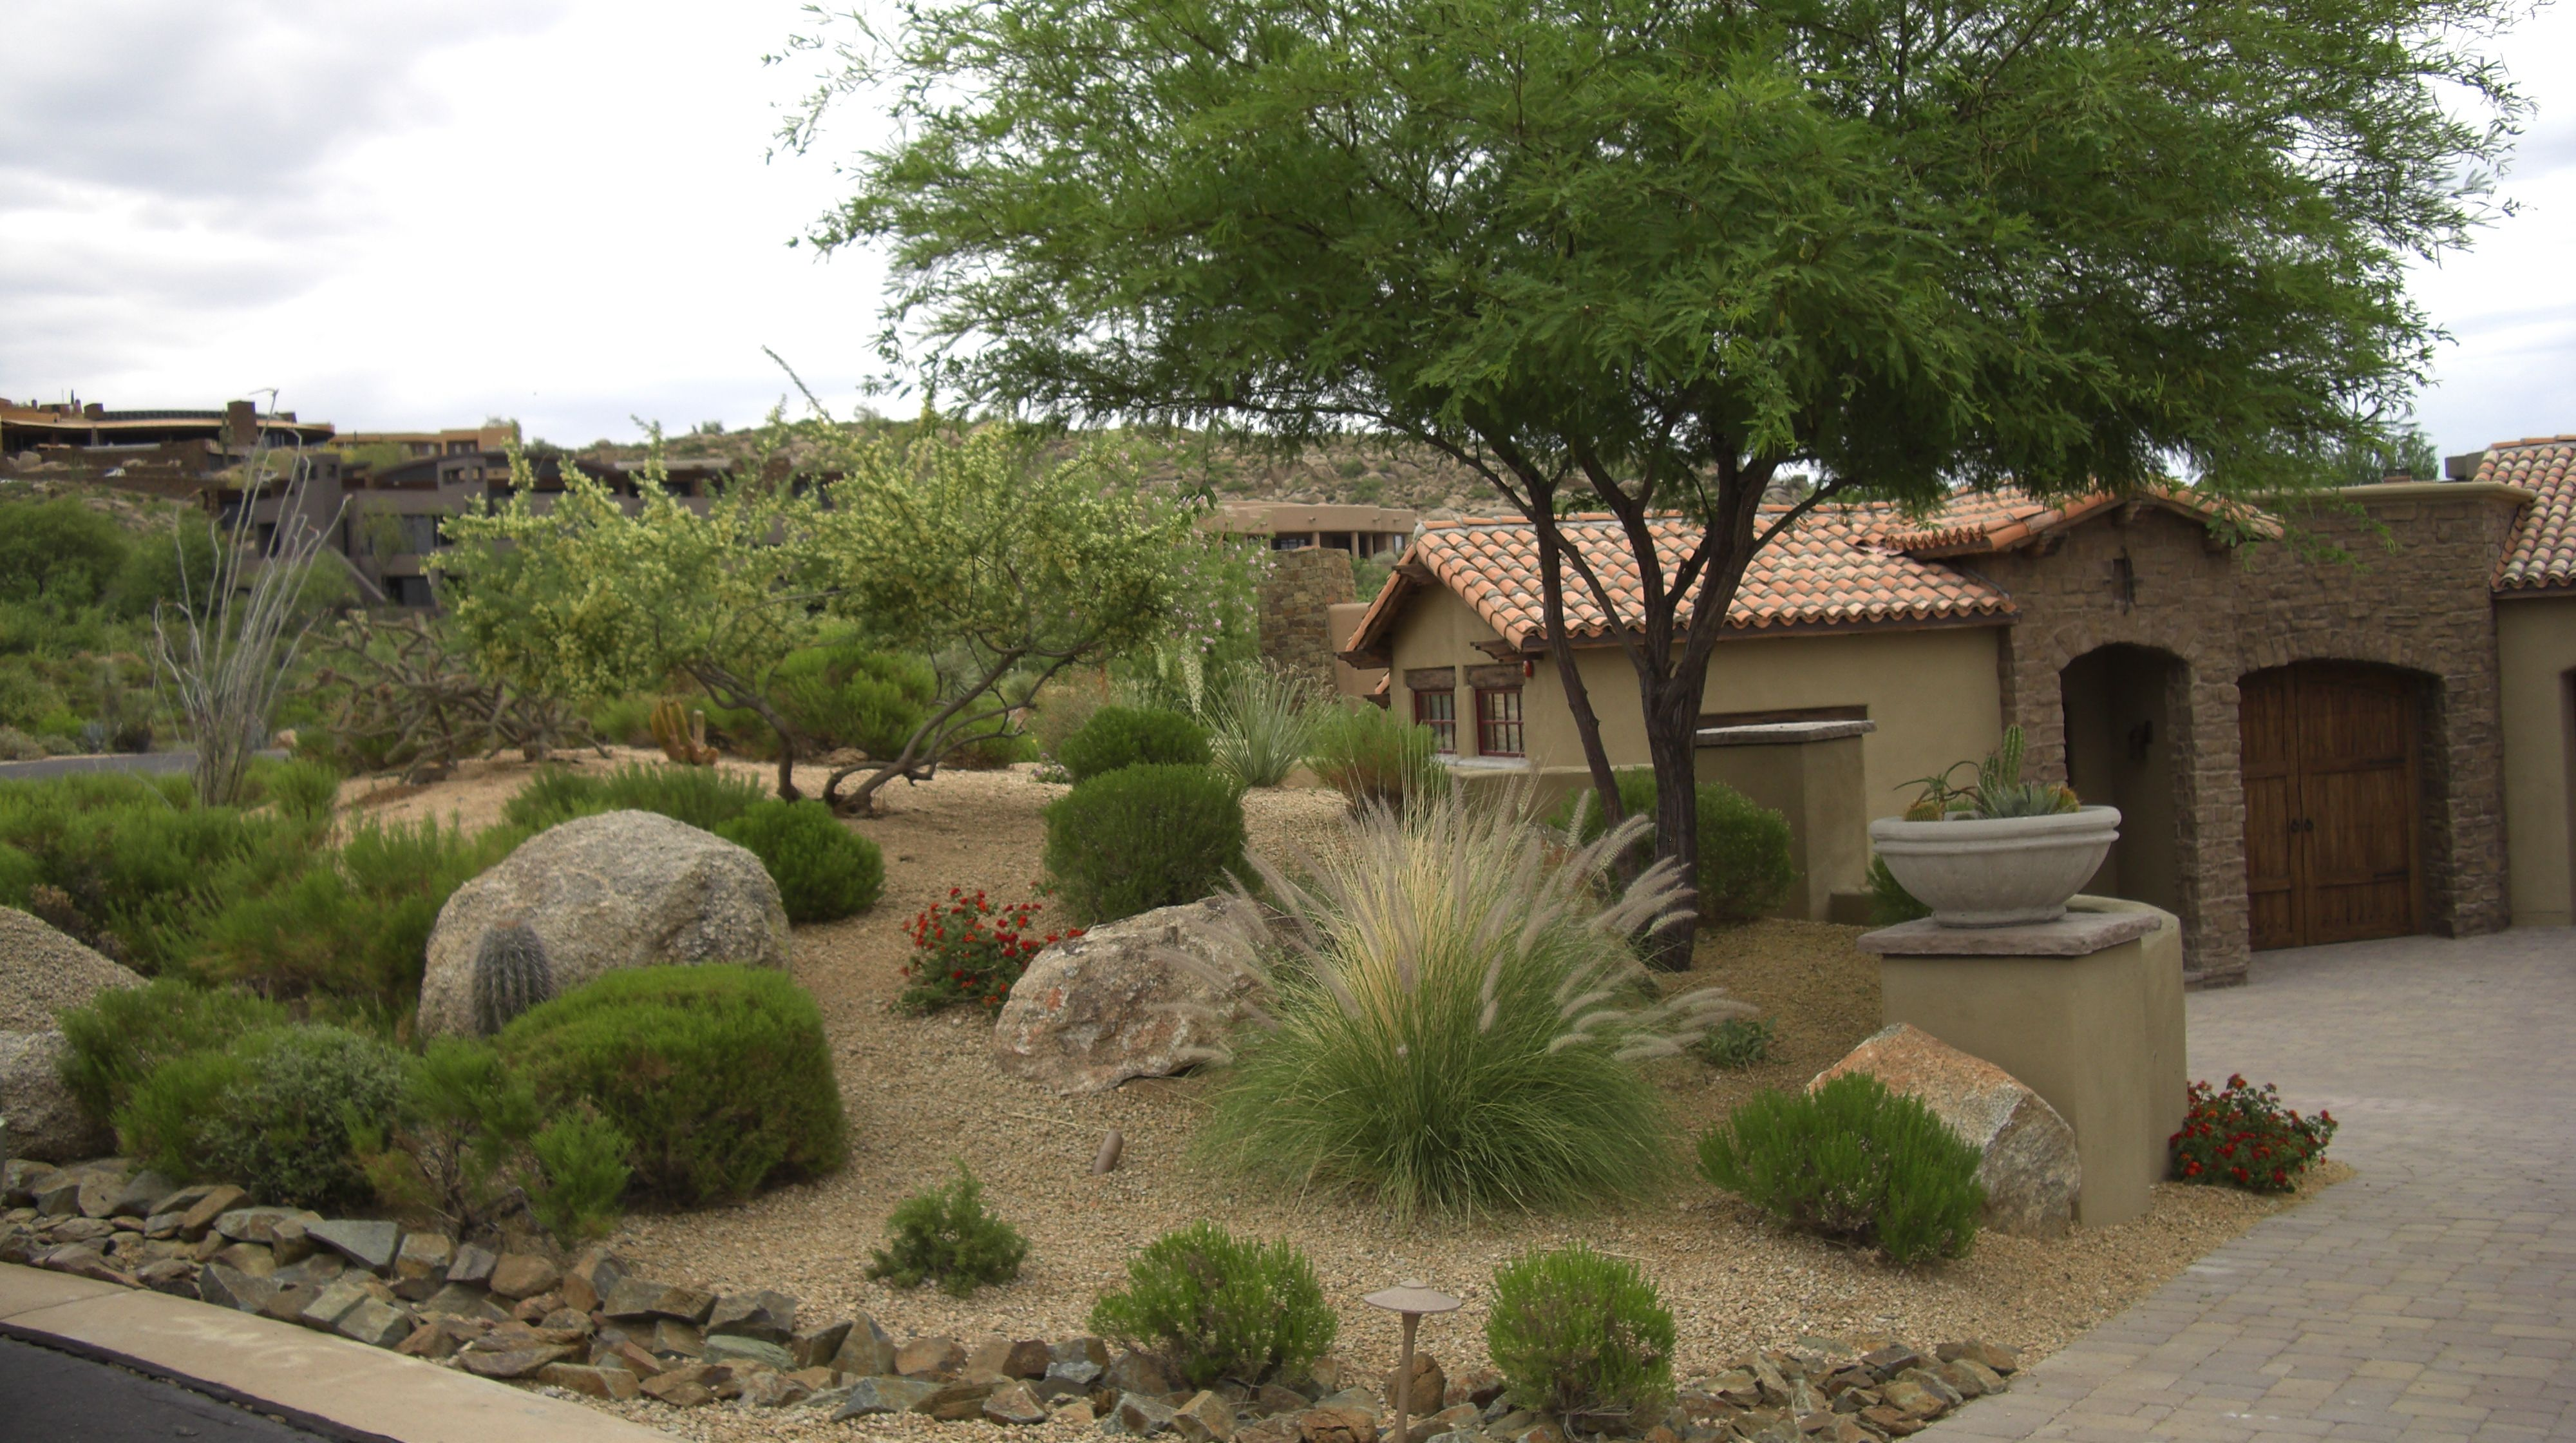 Home and garden front yard - Garden And Patio Desert Plants For Front Yard Landscaping House Design With Stone Border Trees